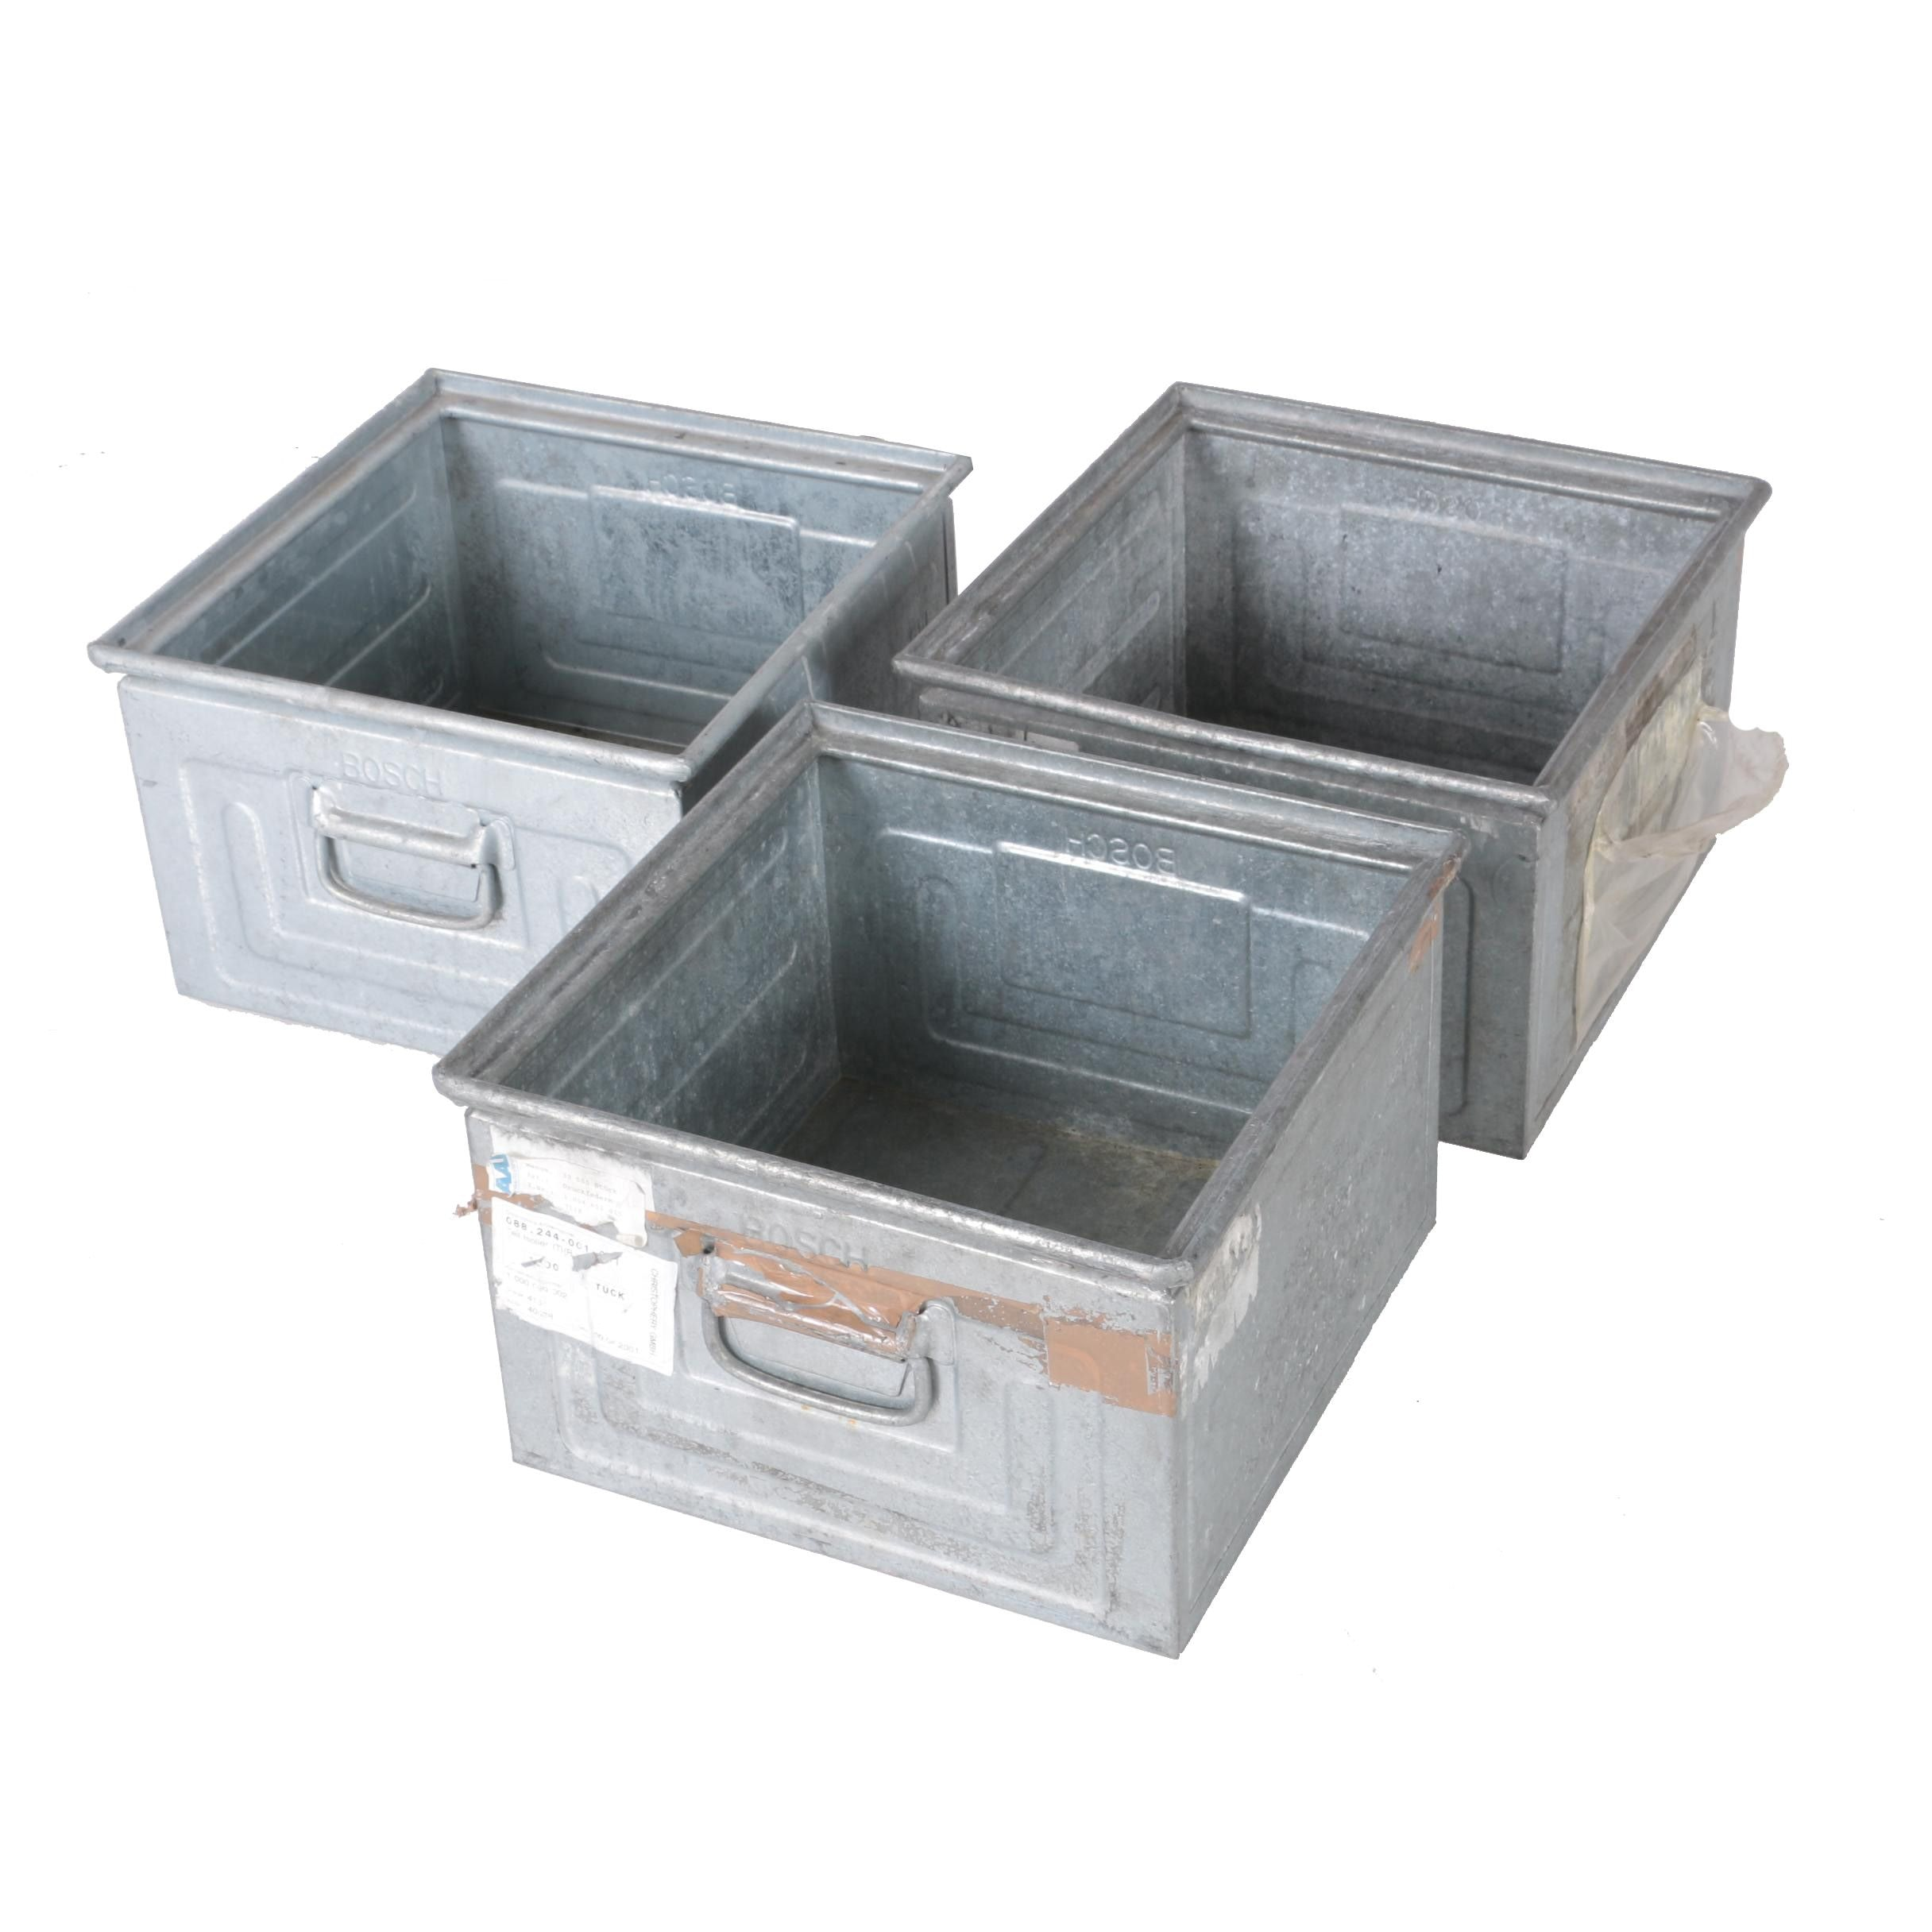 Three Vintage Galvanized Metal Bins